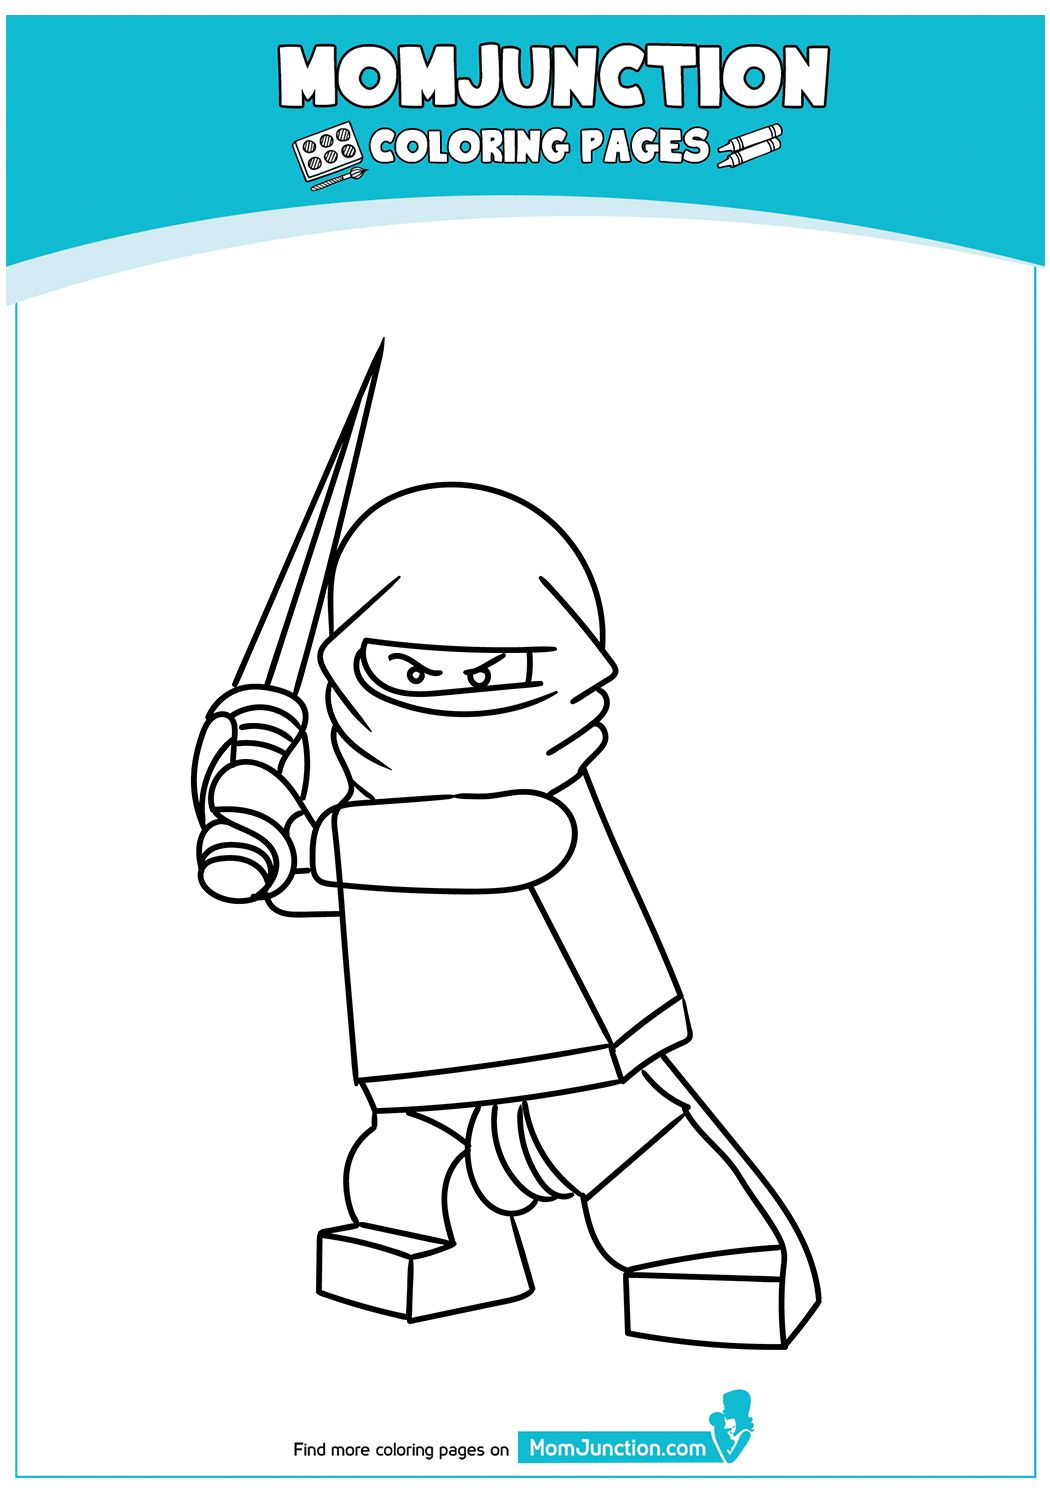 The Cute Ninja Boy With Funky Costume Coloring Page Lego Coloring Pages Transformers Coloring Pages Coloring Pages